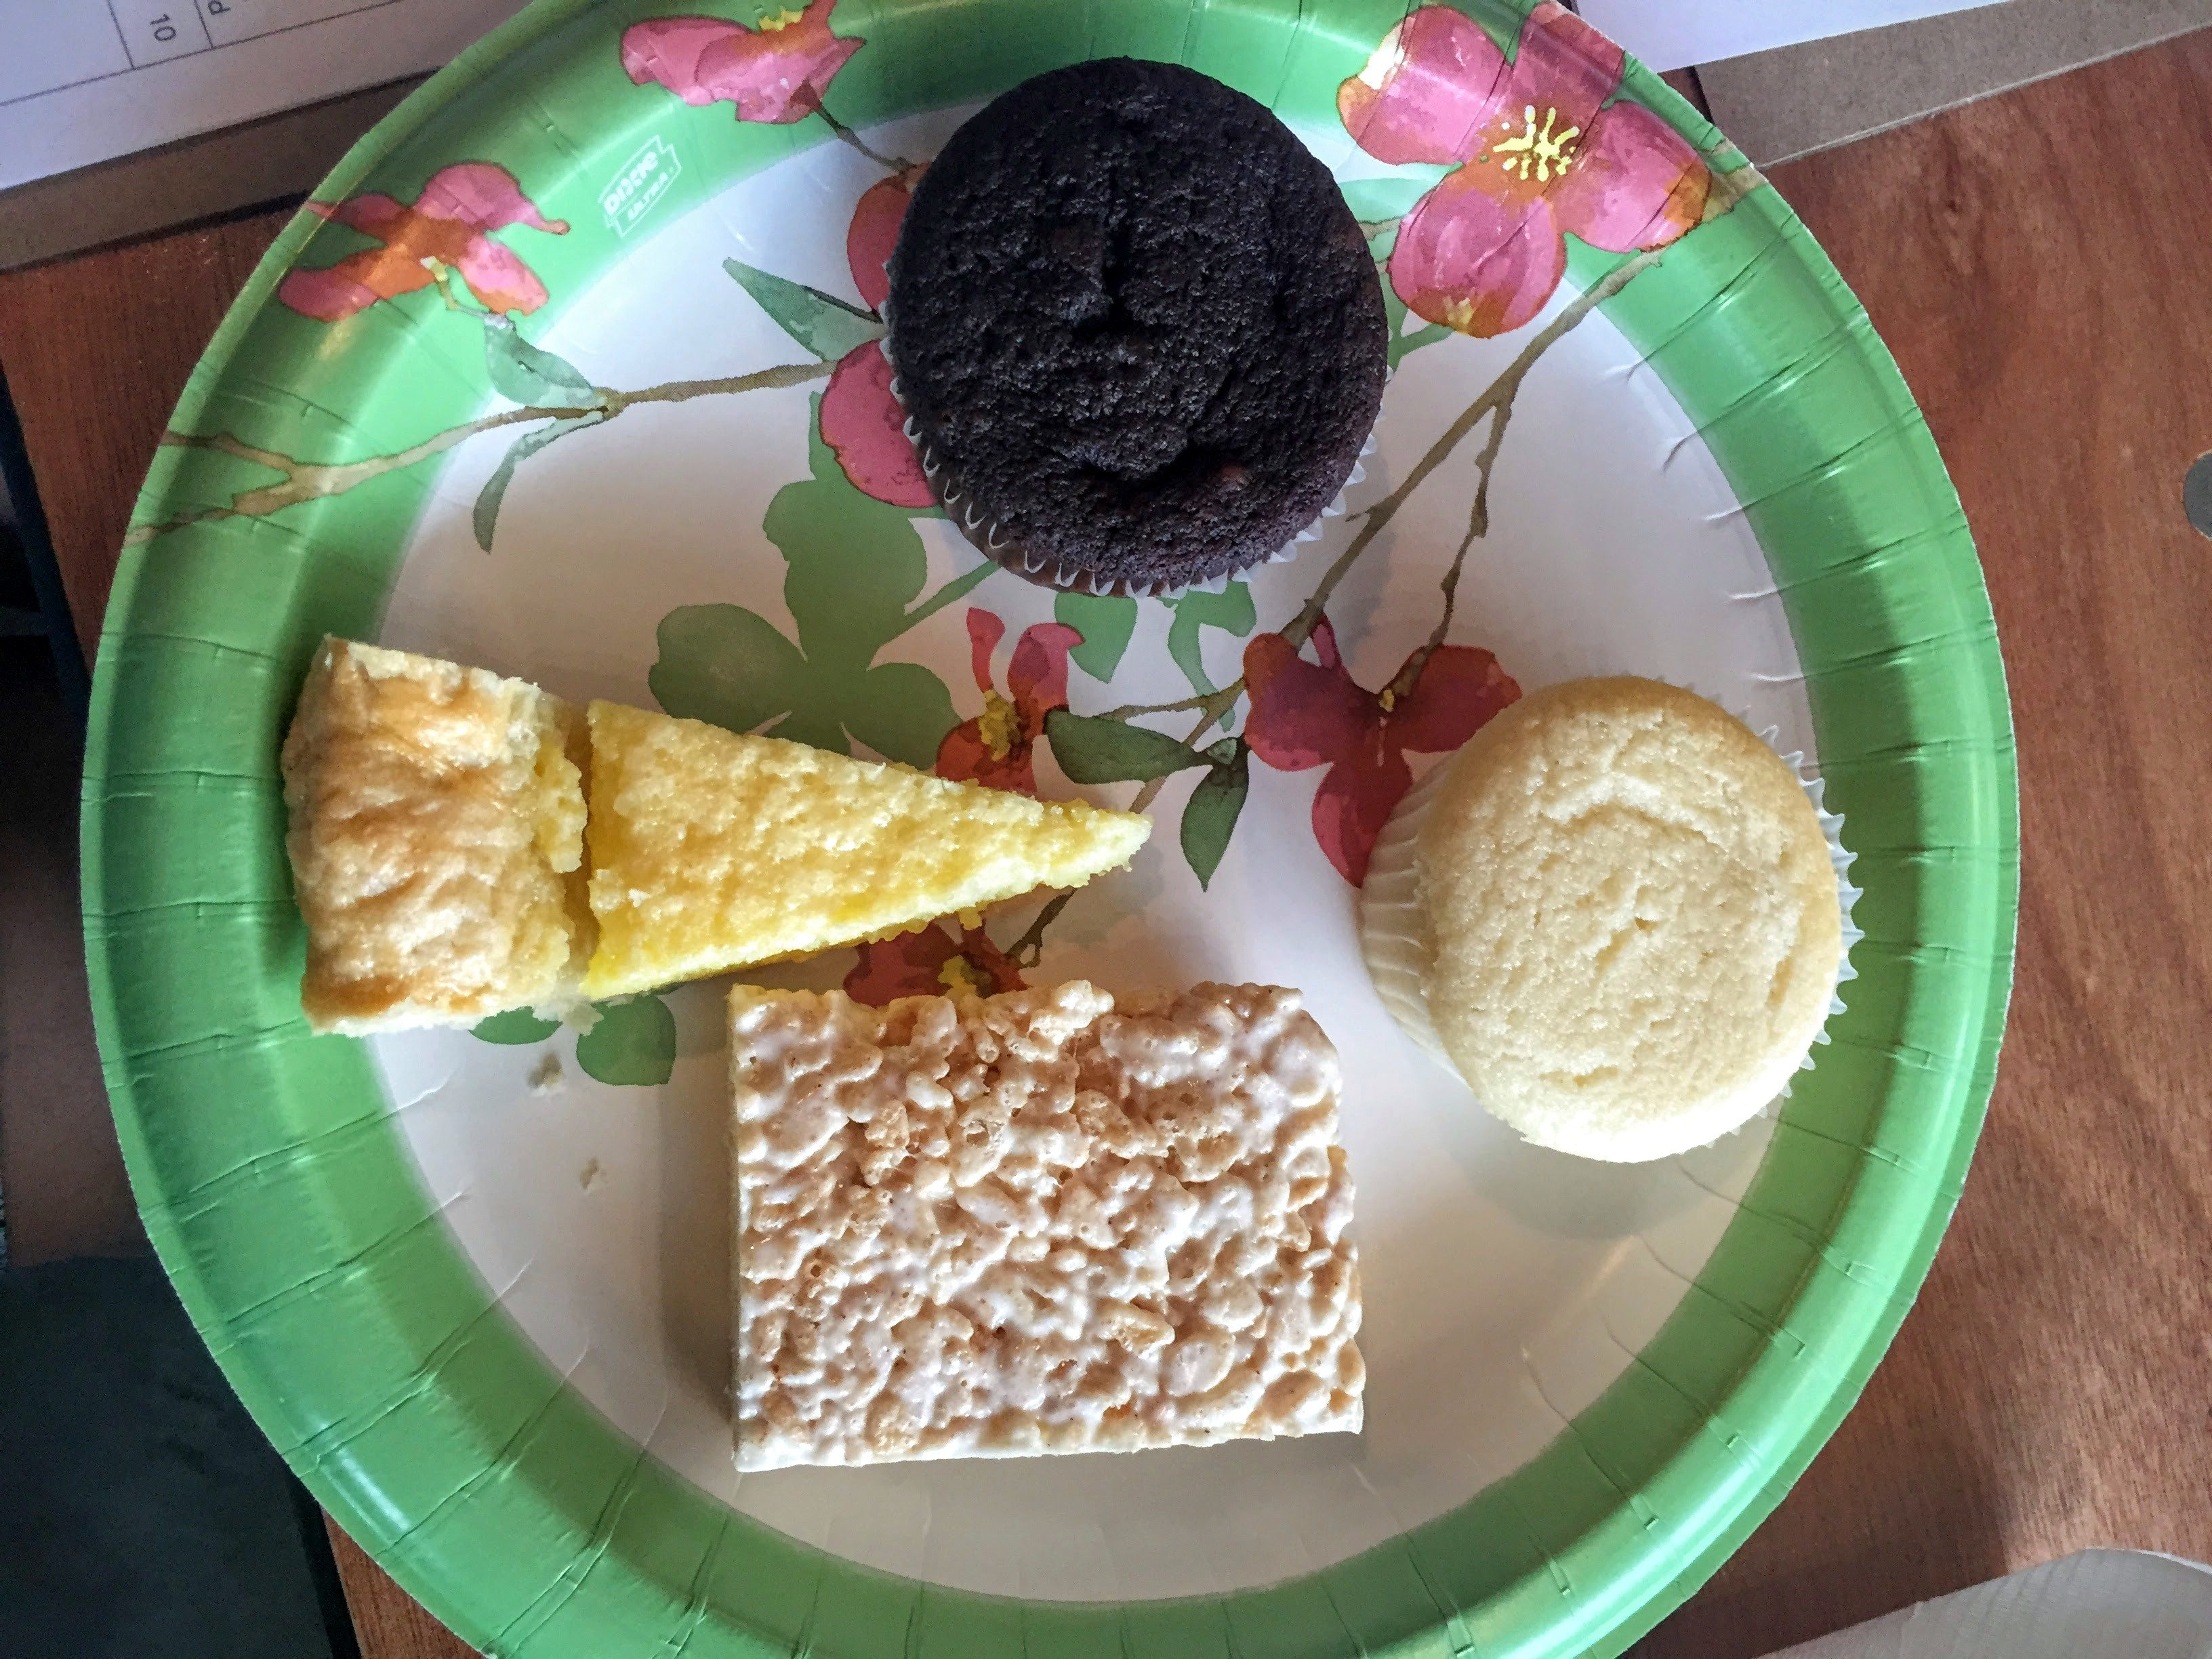 Our plate of goodies to taste and decorate included a chocolate cupcake, a vanilla cupcake, a rice crispy treat (for tasting), and a piece of lemon chess pie. YUM!